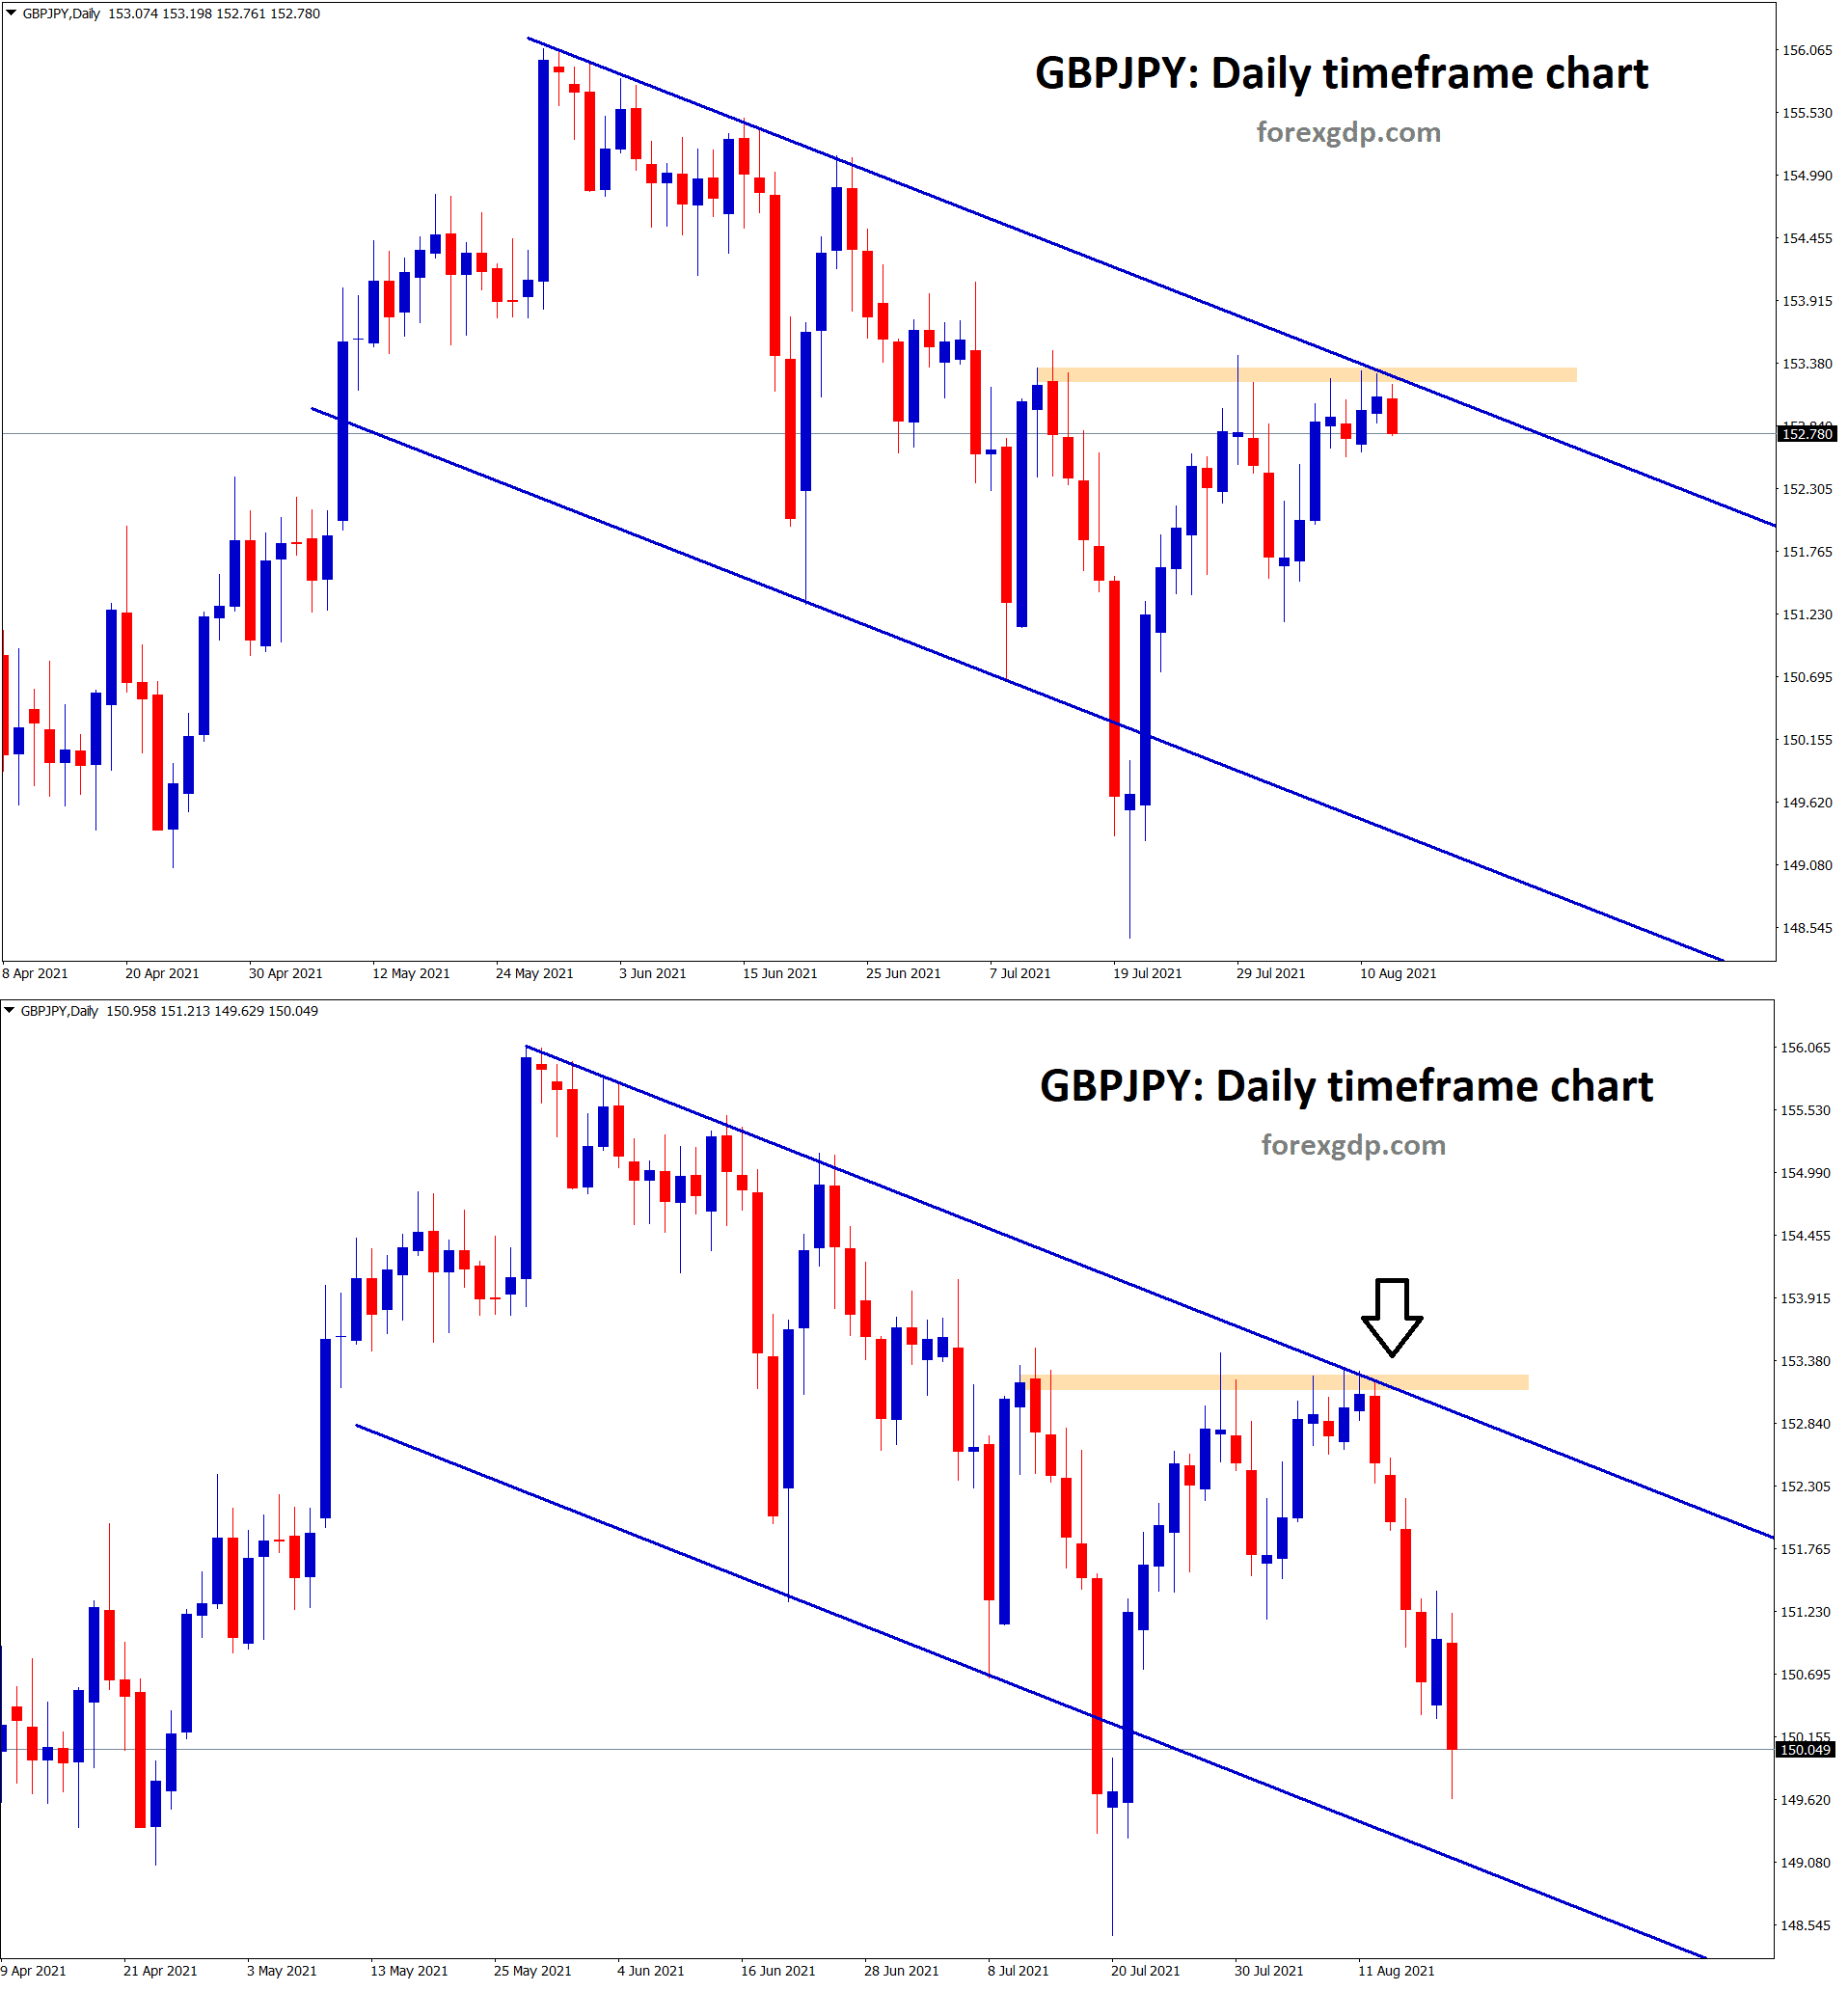 GBPJPY has fallen from the horizontal resistance and lower high zone of the descending